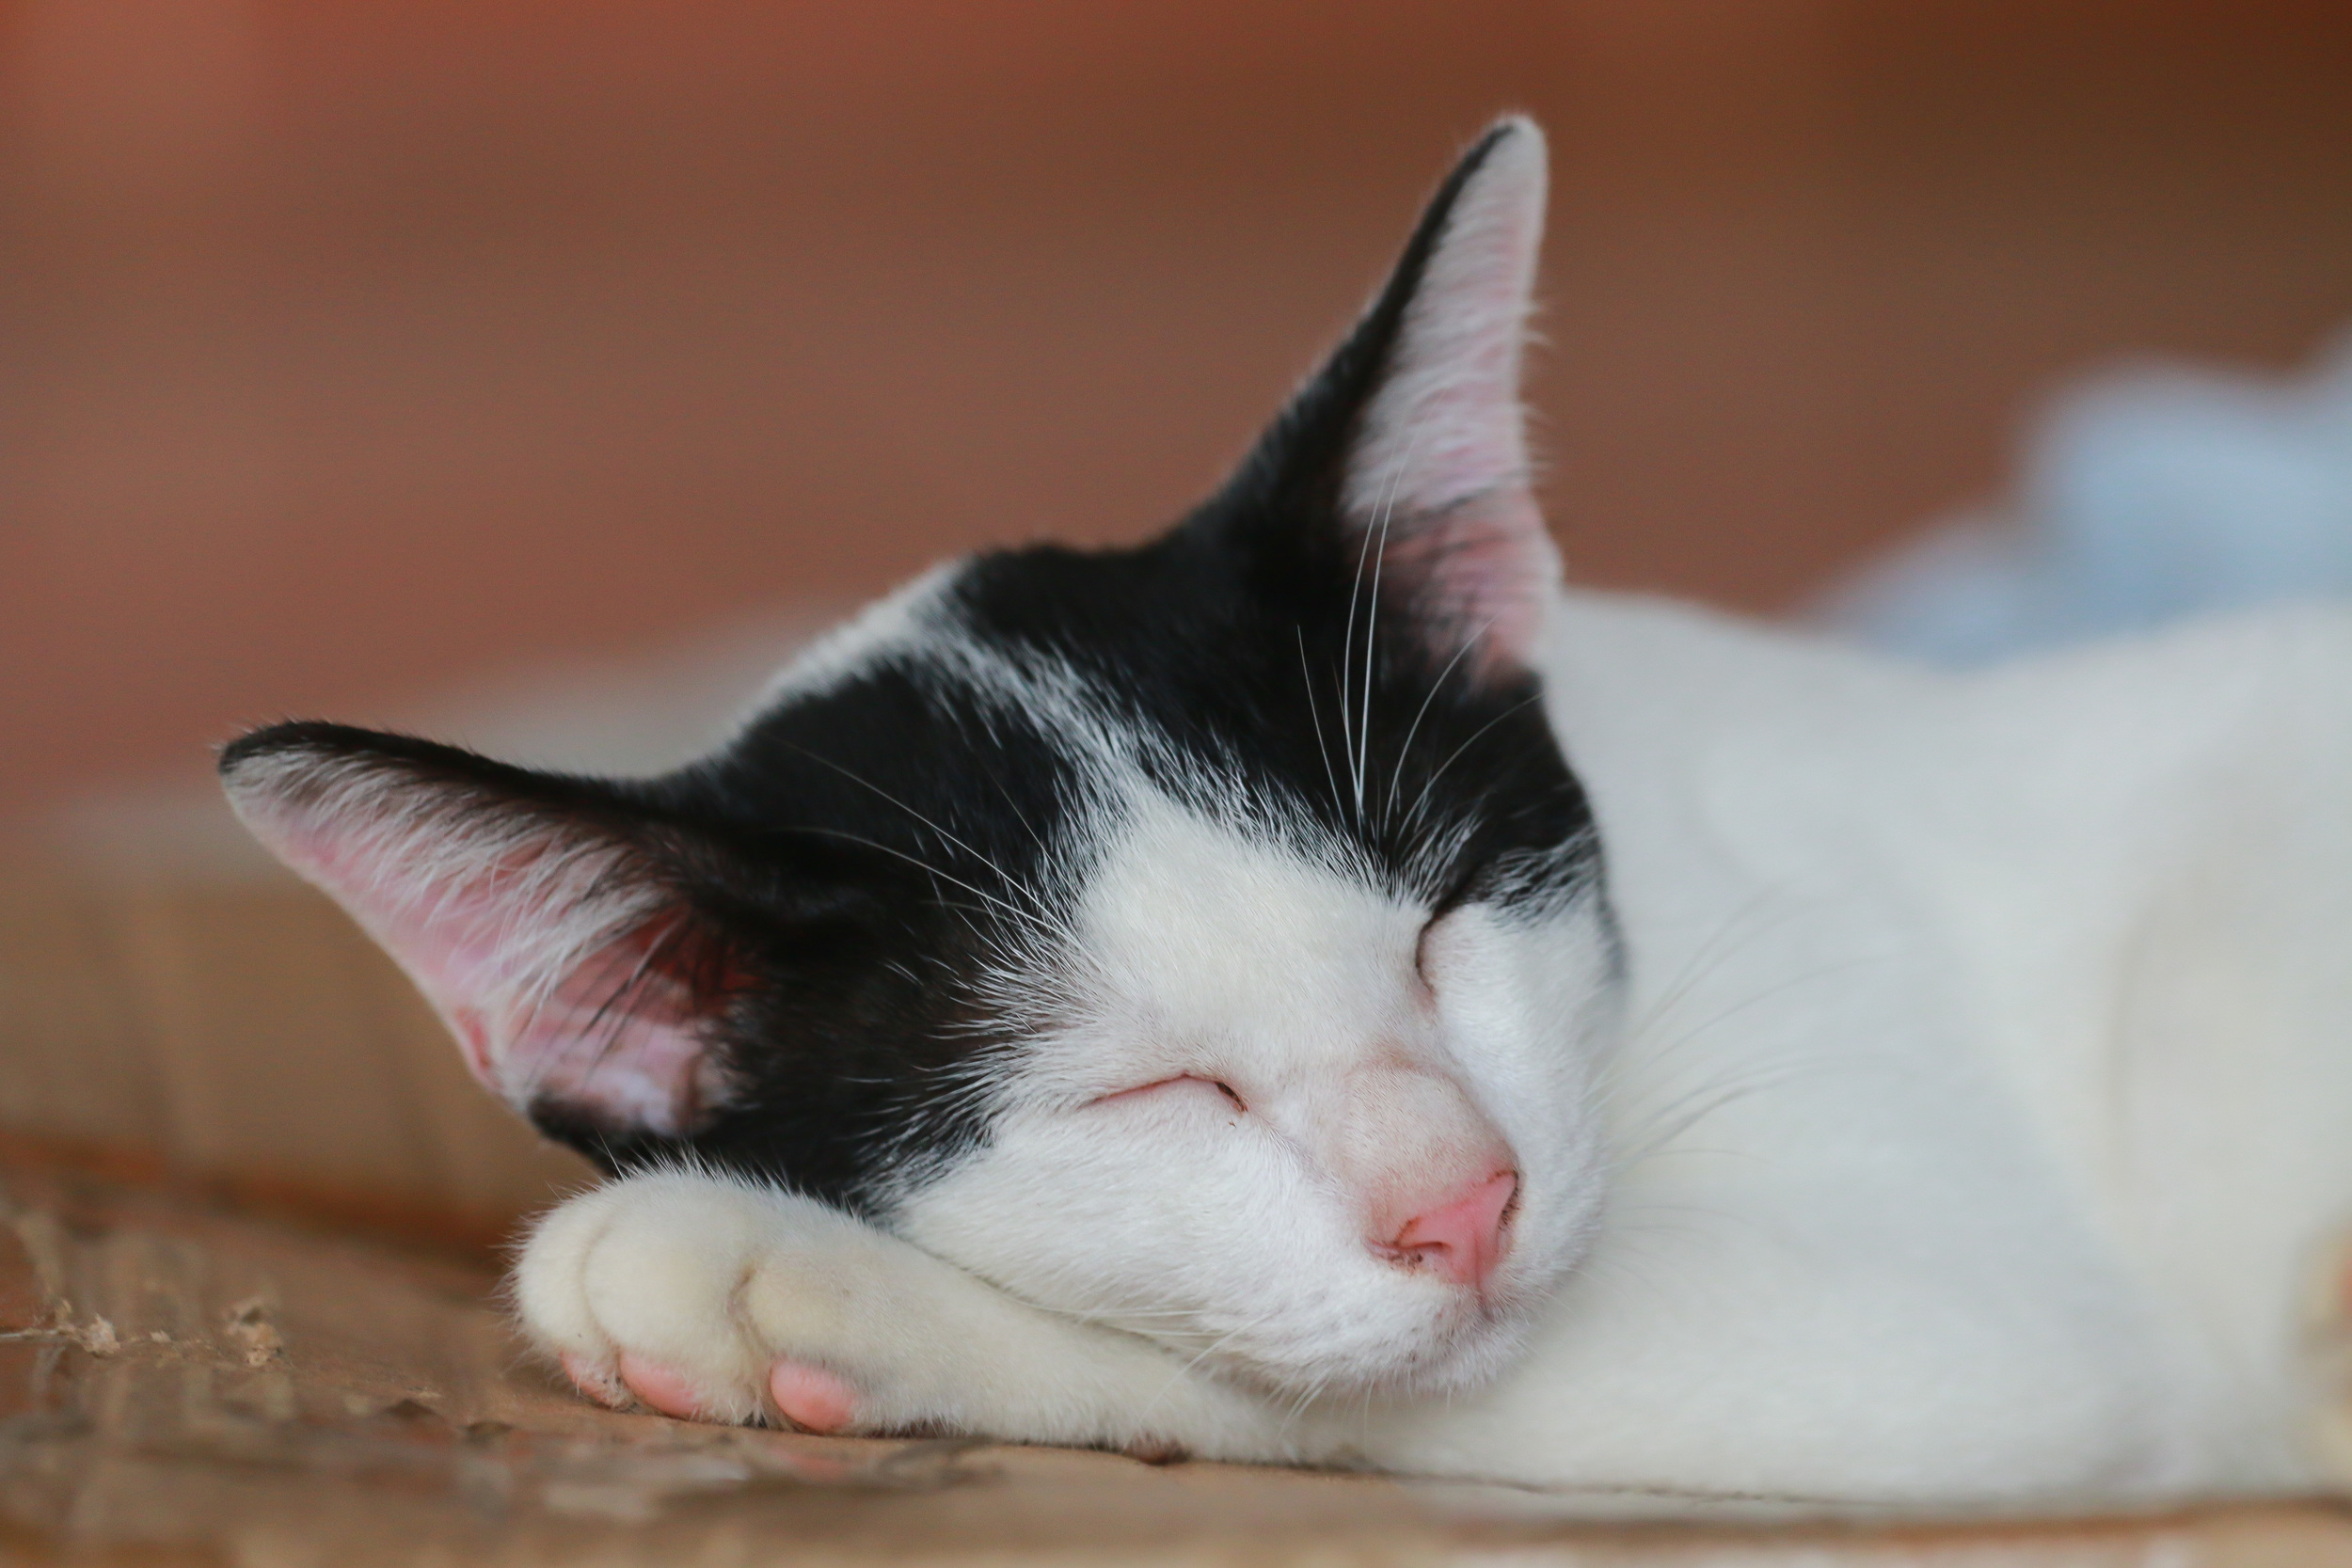 stock-photo-cat-sleeping-peaceful-456060058.jpg